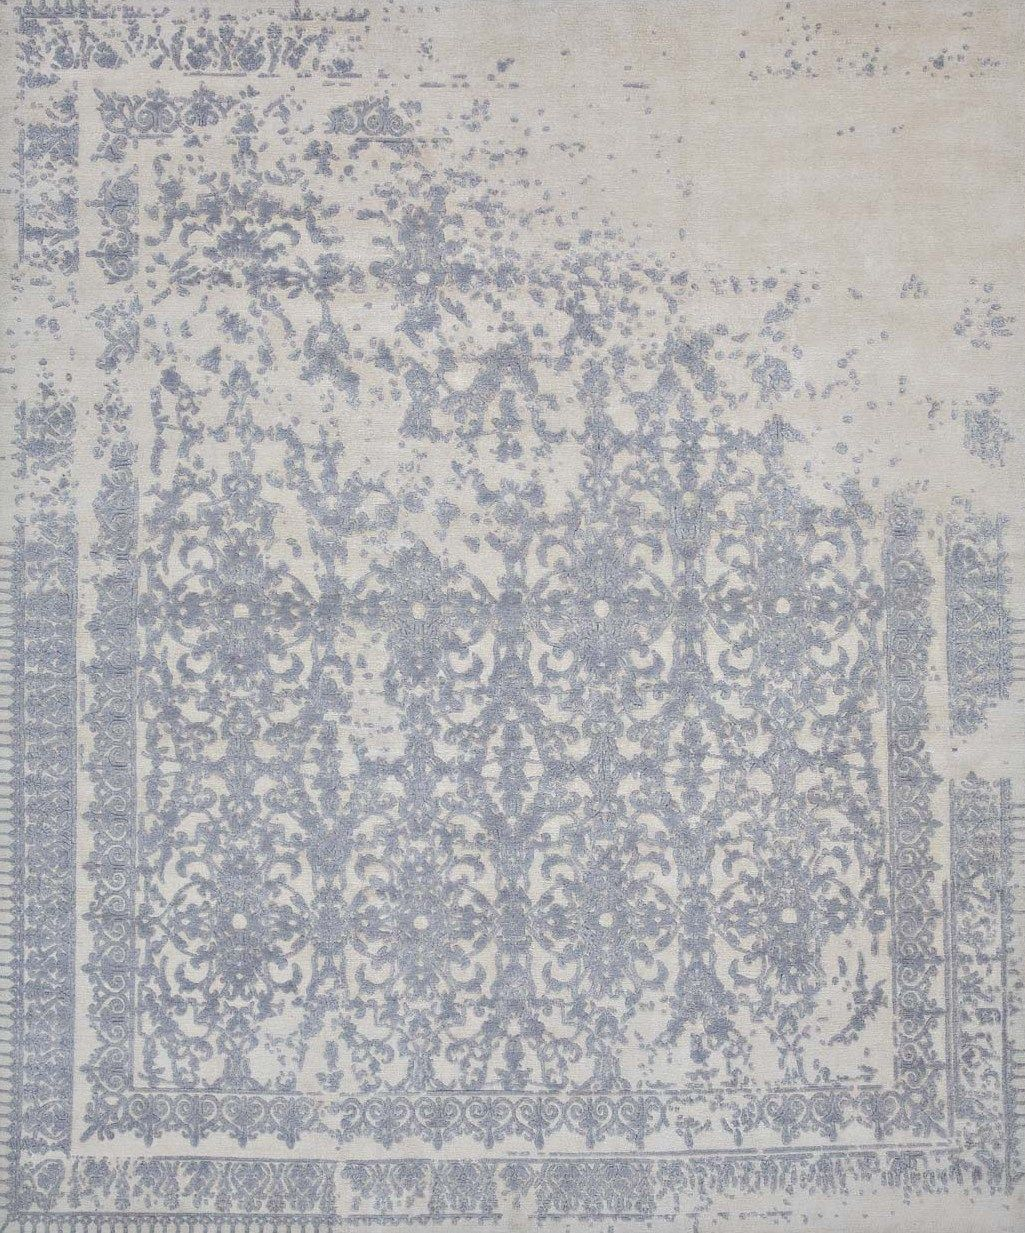 silk erased pattern now available through rug mart houston!   just